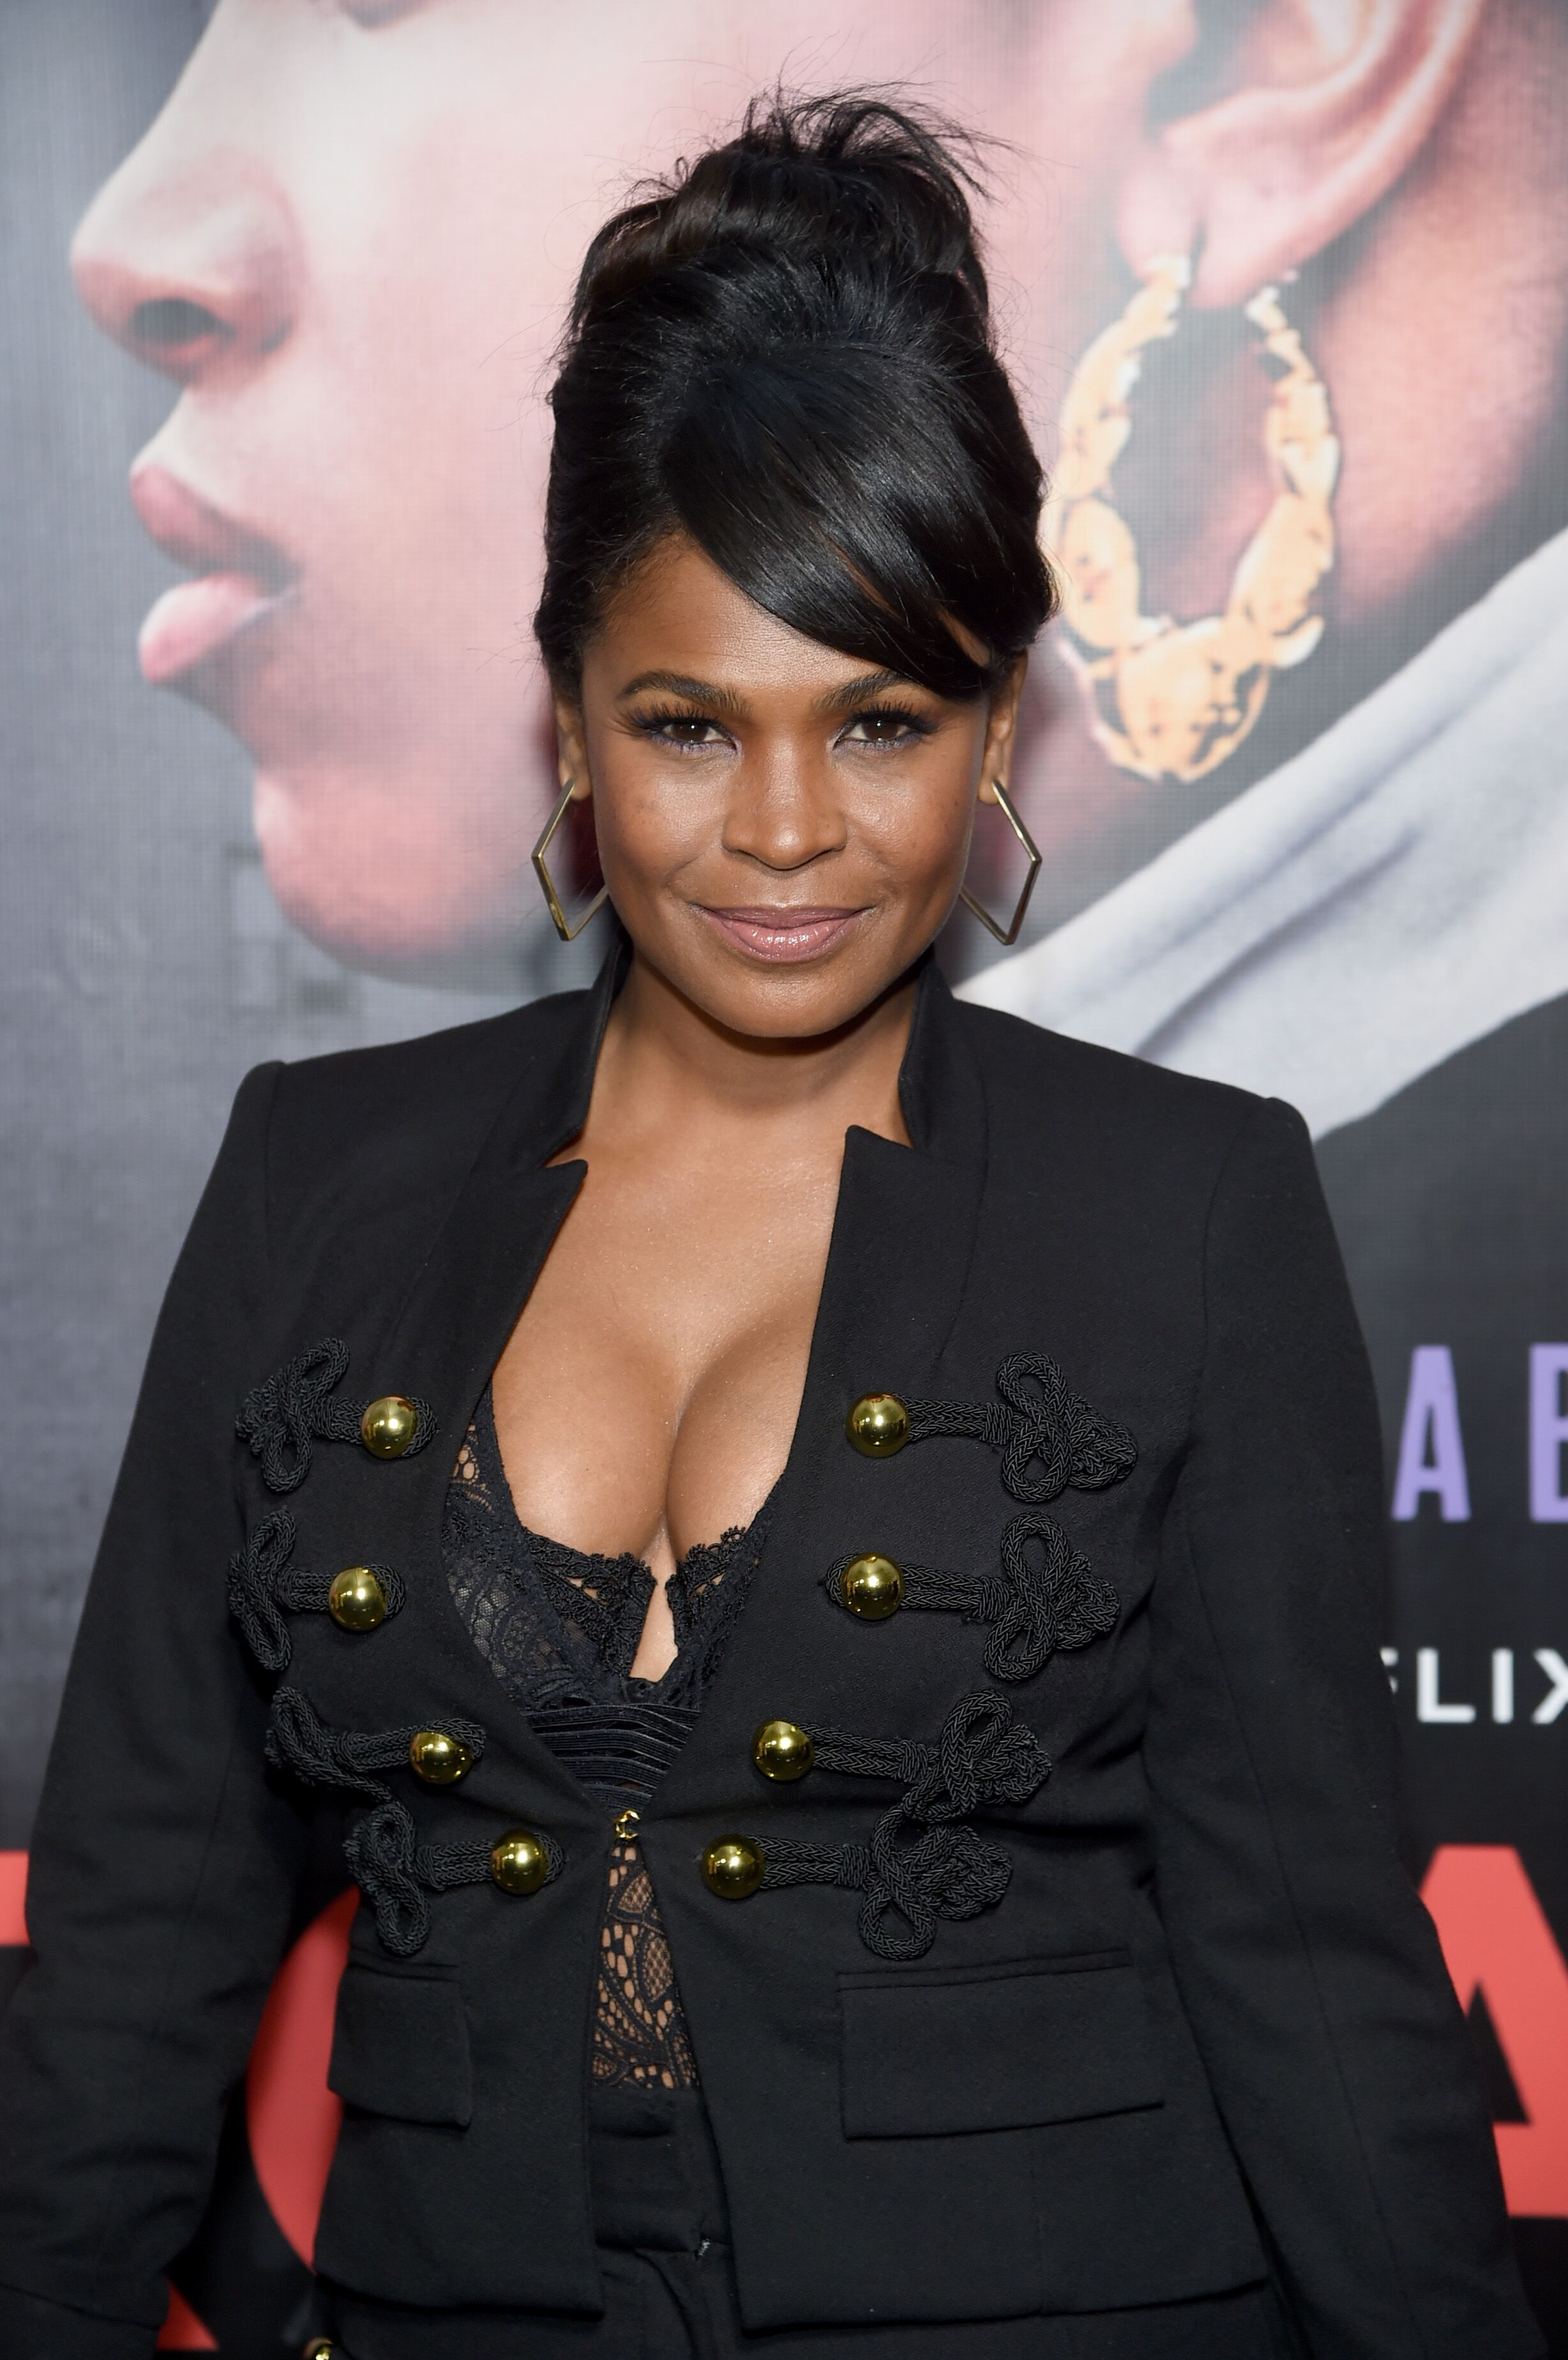 """Nia Long at the screening of """"Roxanne Roxanne"""" in 2018 